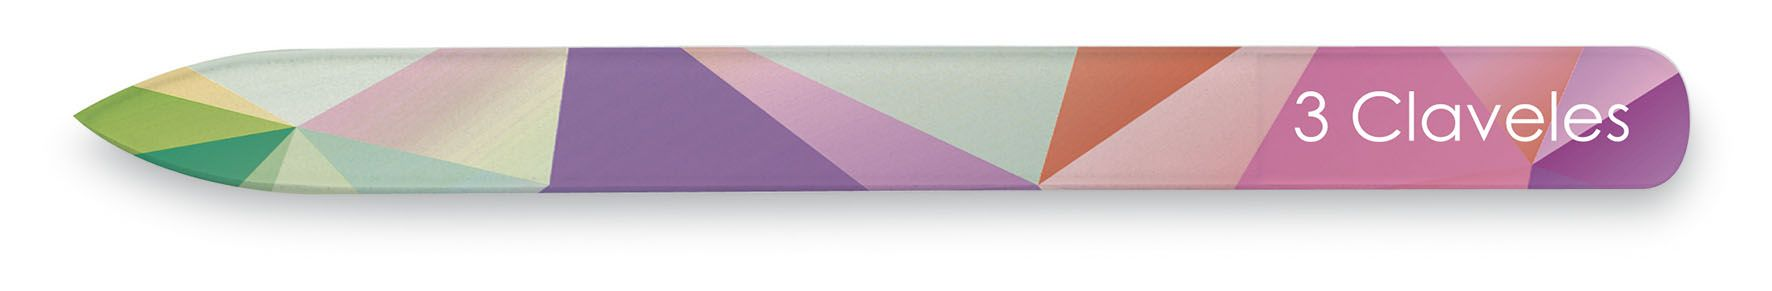 GEOMETRY GLASS NAIL FILE D 3C